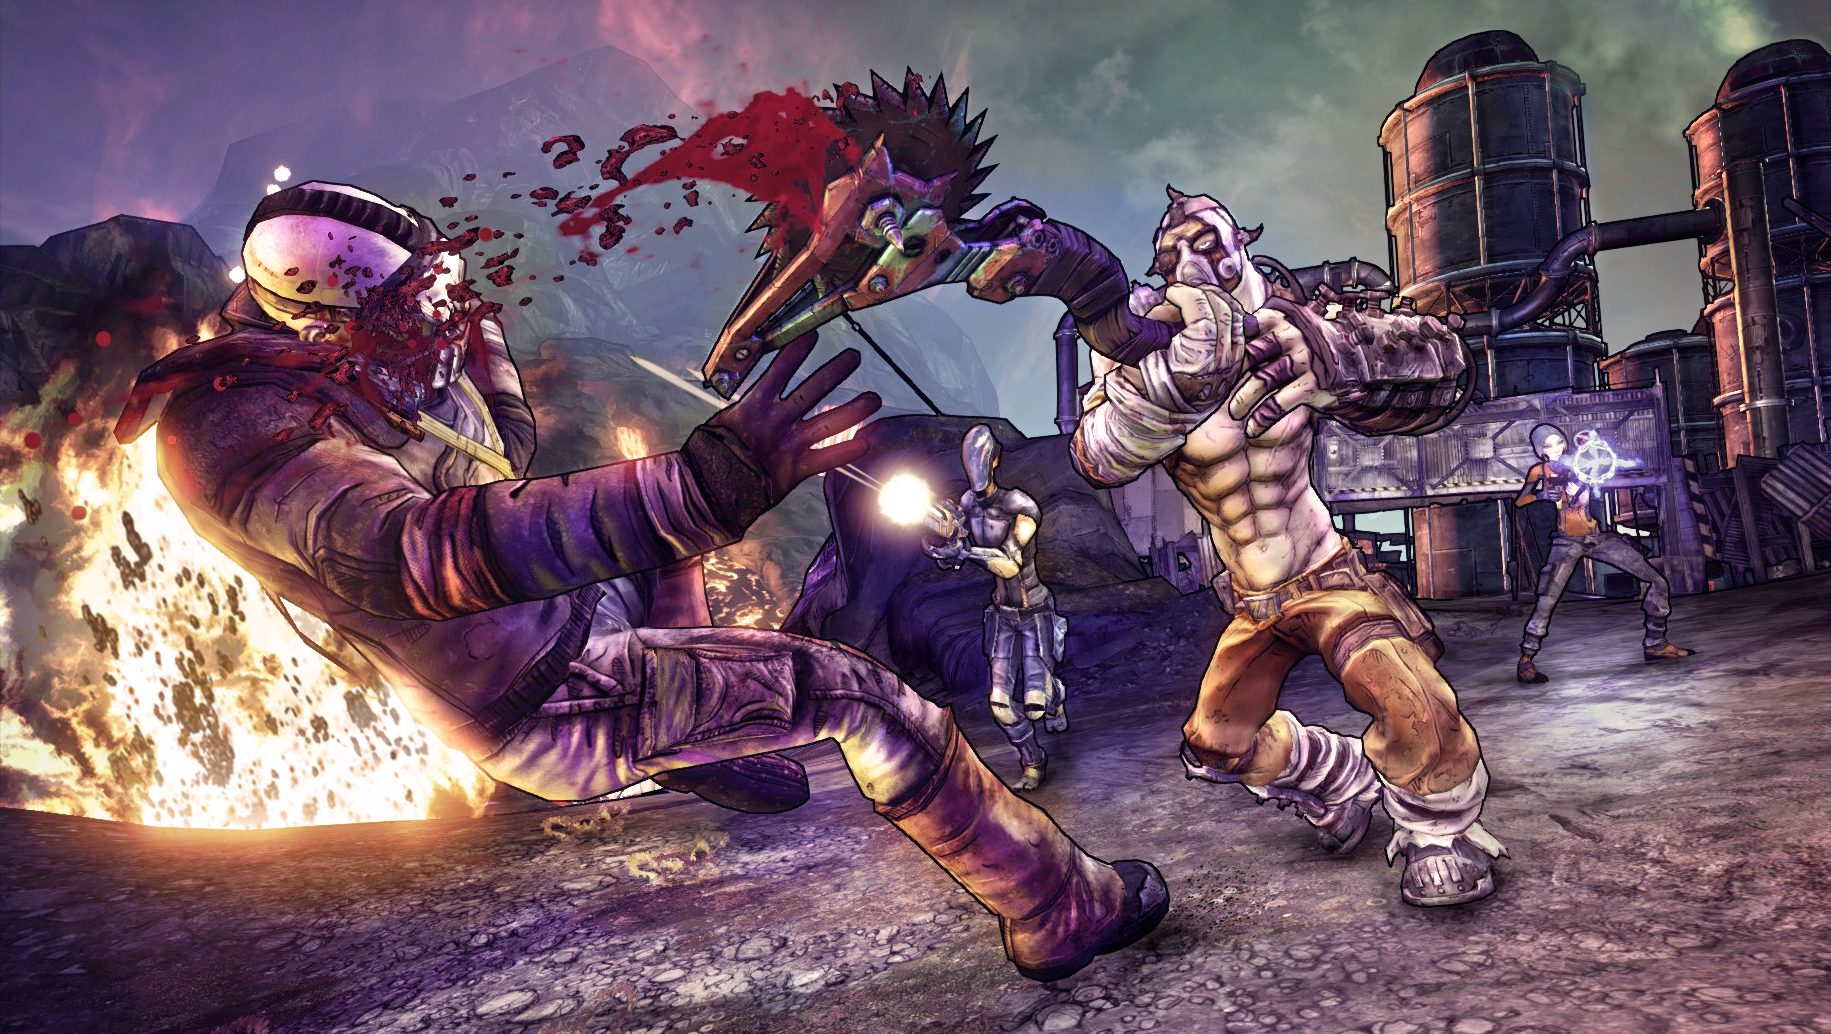 Krieg The Psycho Borderlands 2 Wallpaper By: Any Badass Krieg Wallpapers? : Borderlands